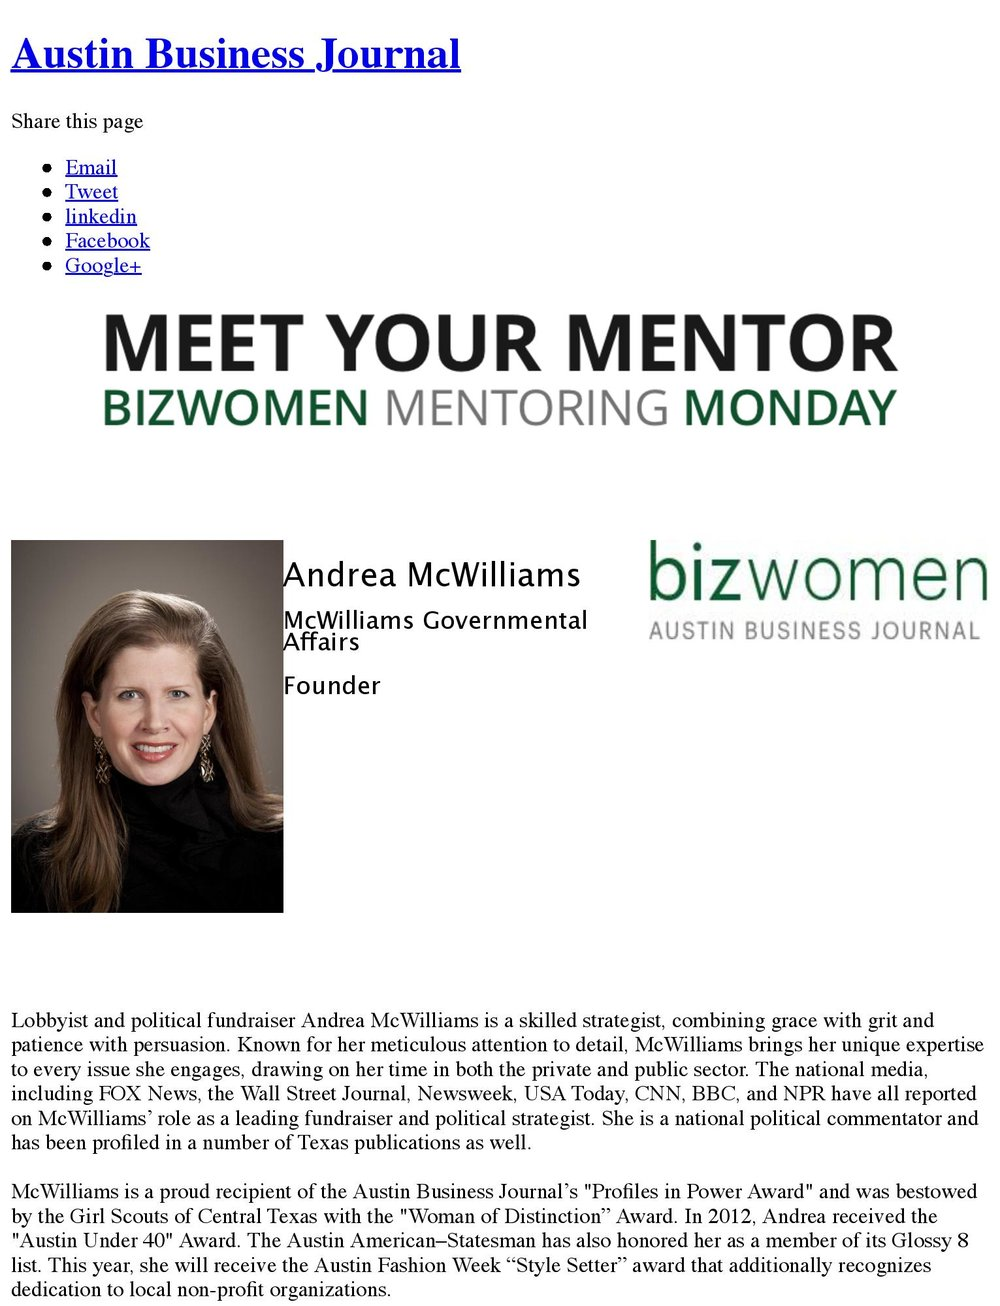 Meet Your Mentor - Austin Business Journal